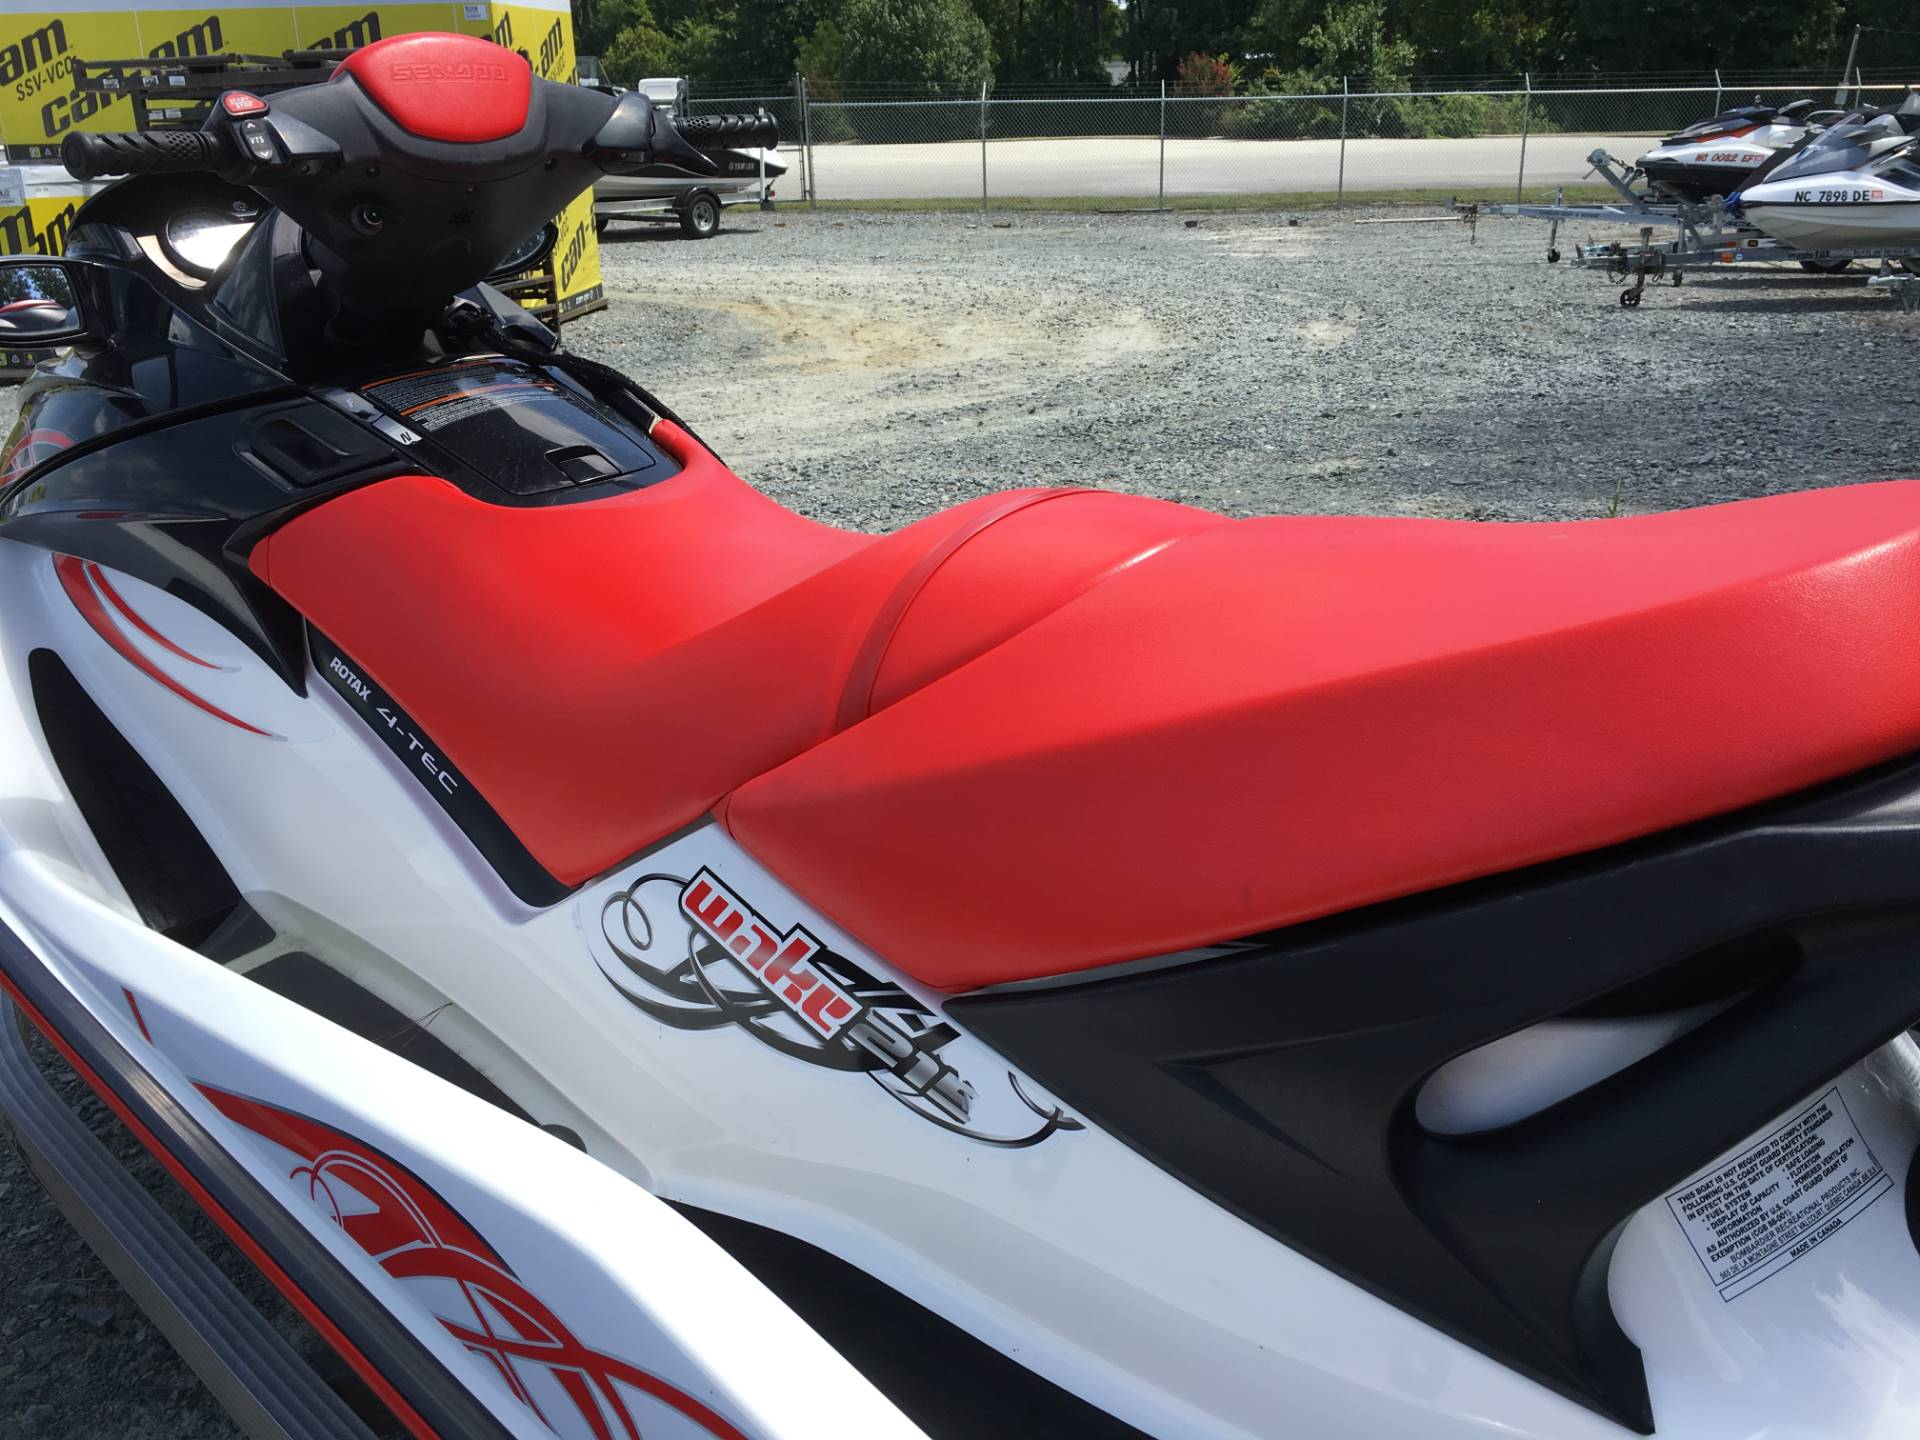 2008 Sea-Doo WAKE™ 215 in Goldsboro, North Carolina